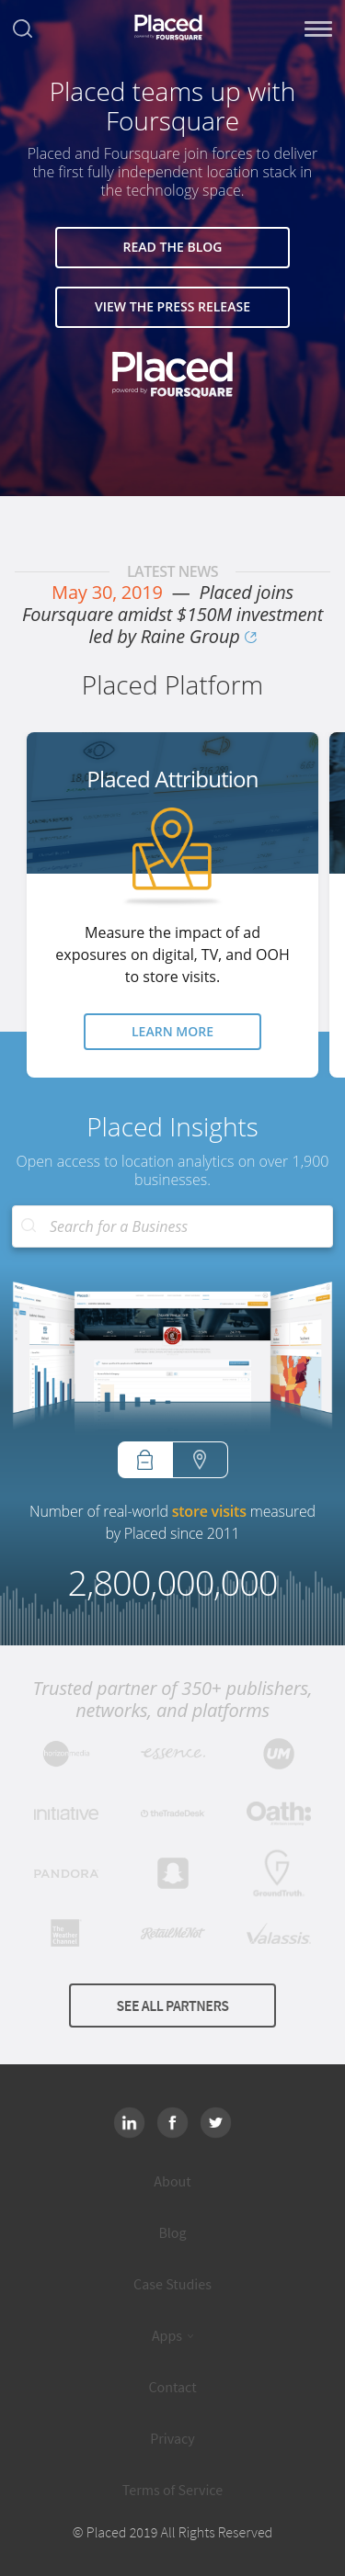 Example of Design for Uncategorized, Mobile Landing Page by placed.com | Mobile Landing Page Design